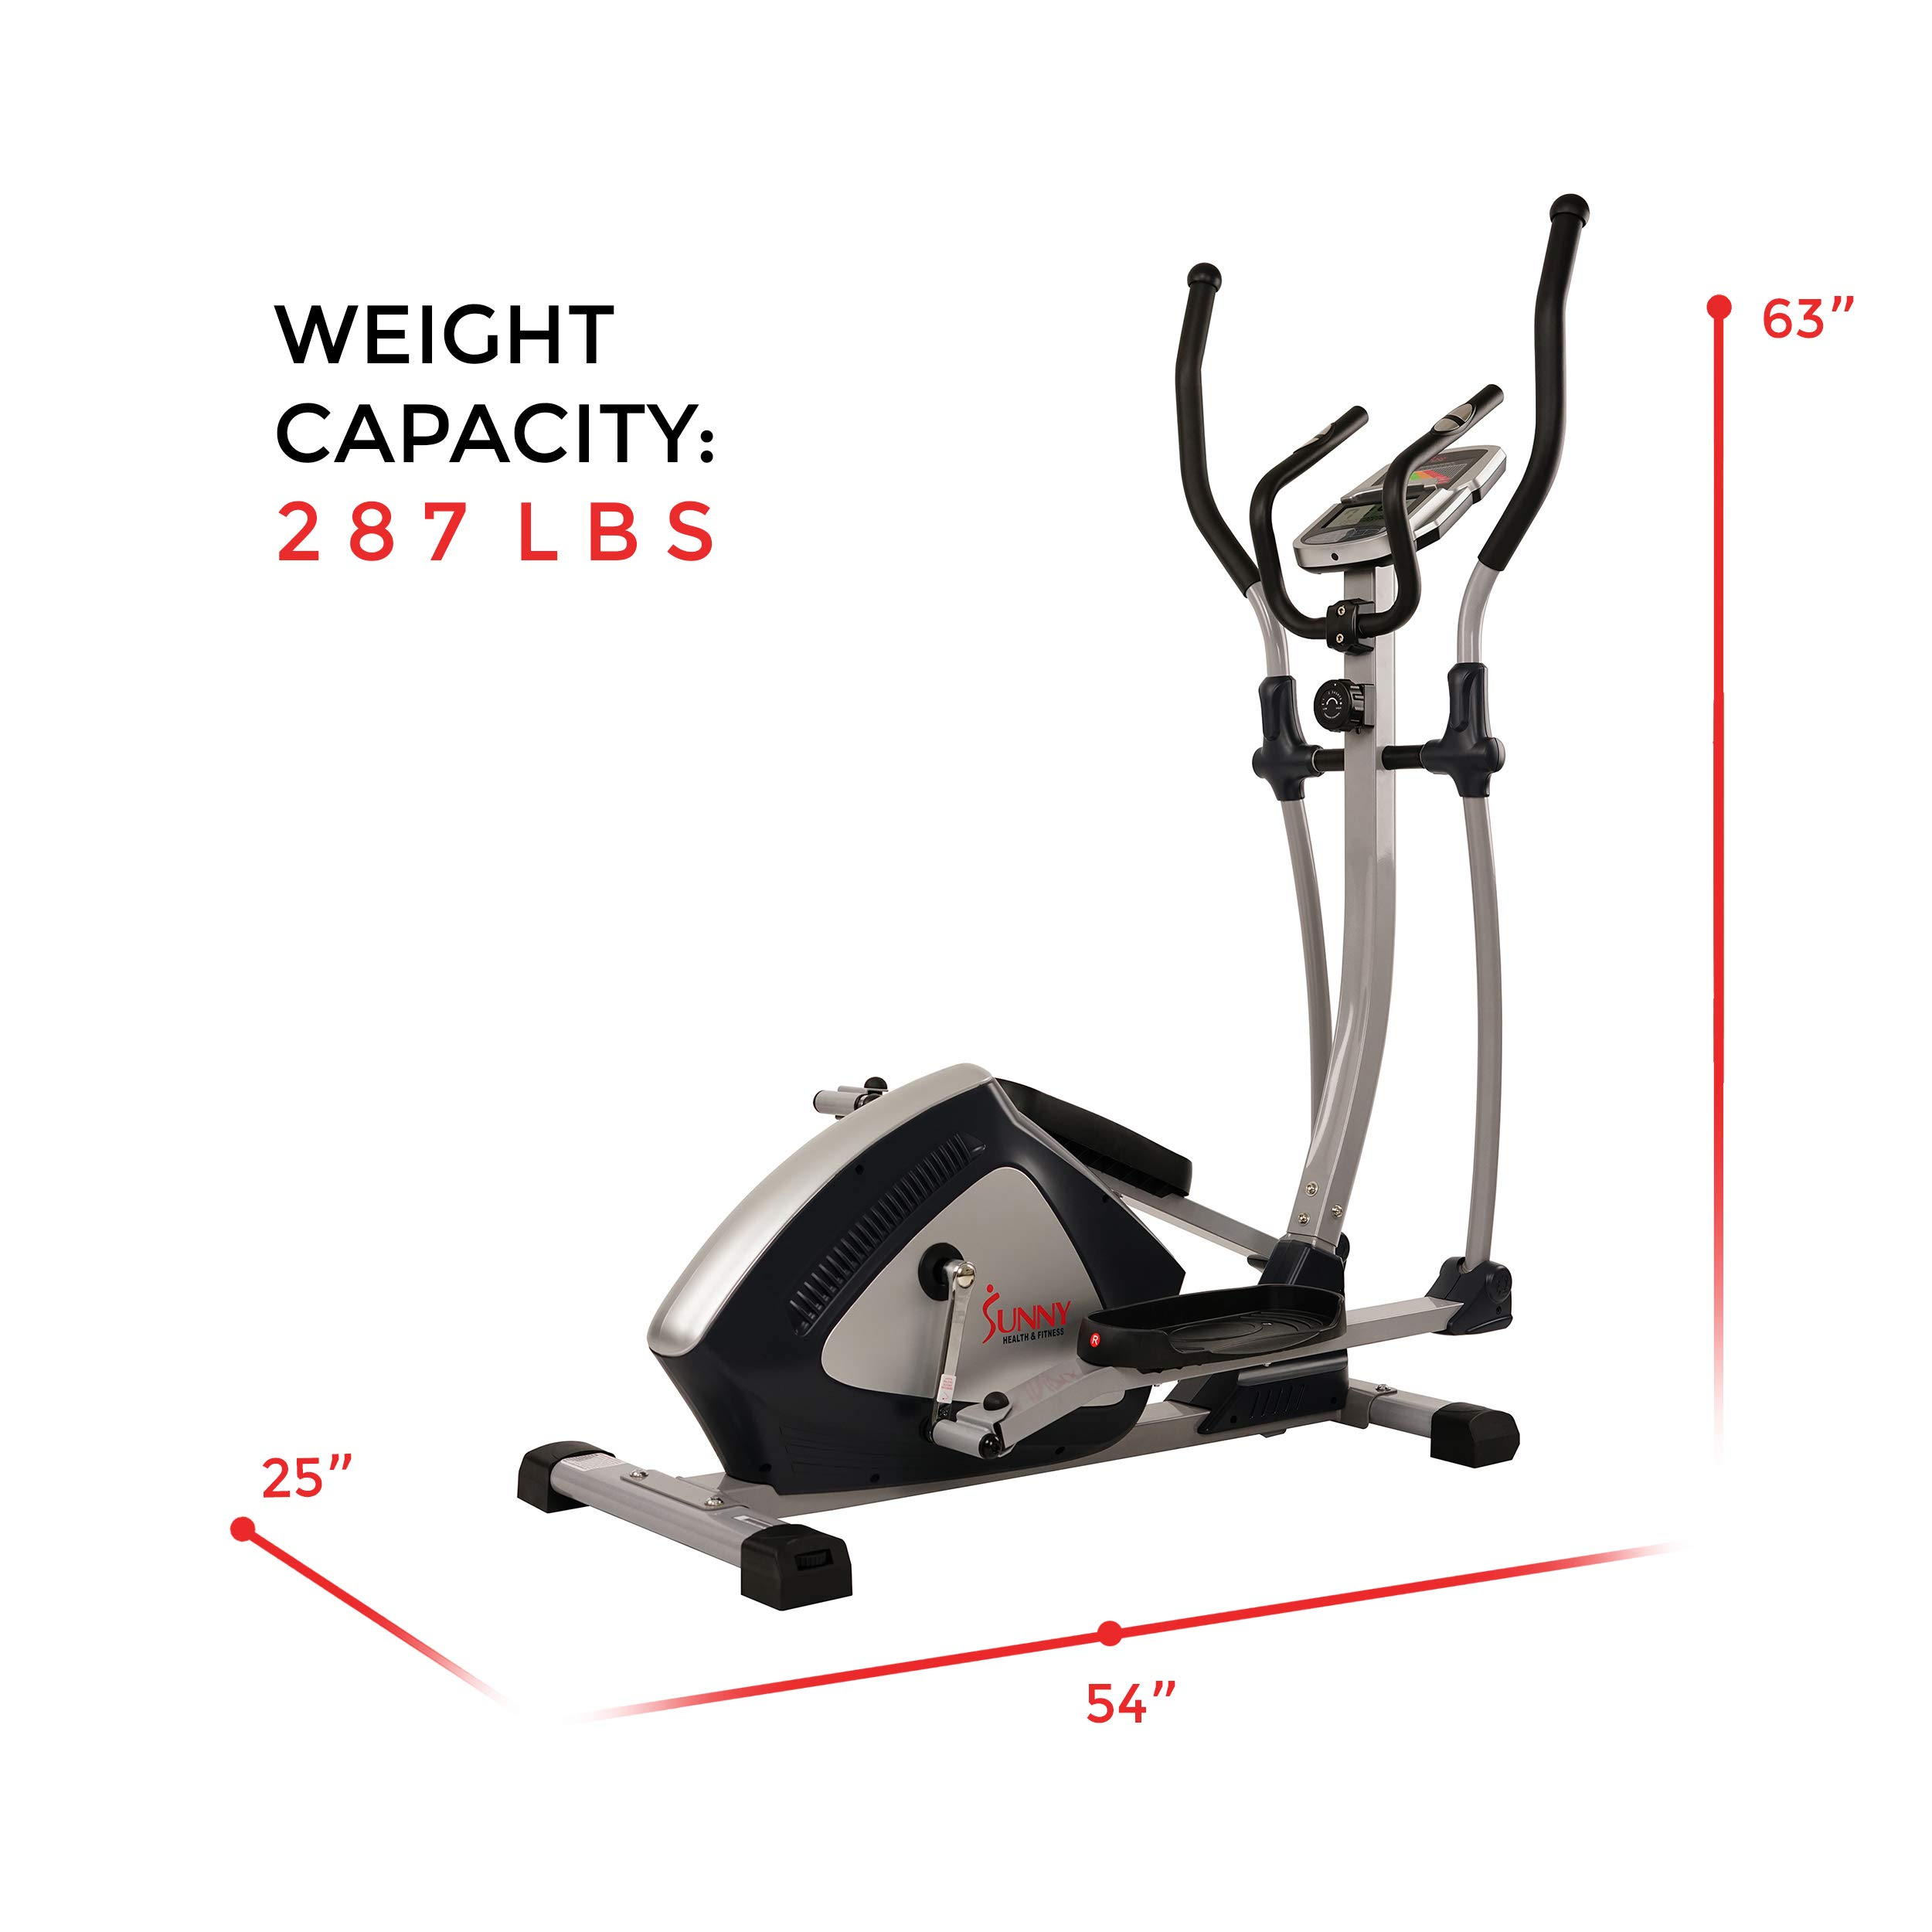 Sunny Health & Fitness Magnetic Elliptical Trainer Elliptical Machine w/  LCD Monitor and Heart Rate Monitoring - Endurance Zone - SF-E3804 by Sunny Health & Fitness (Image #13)